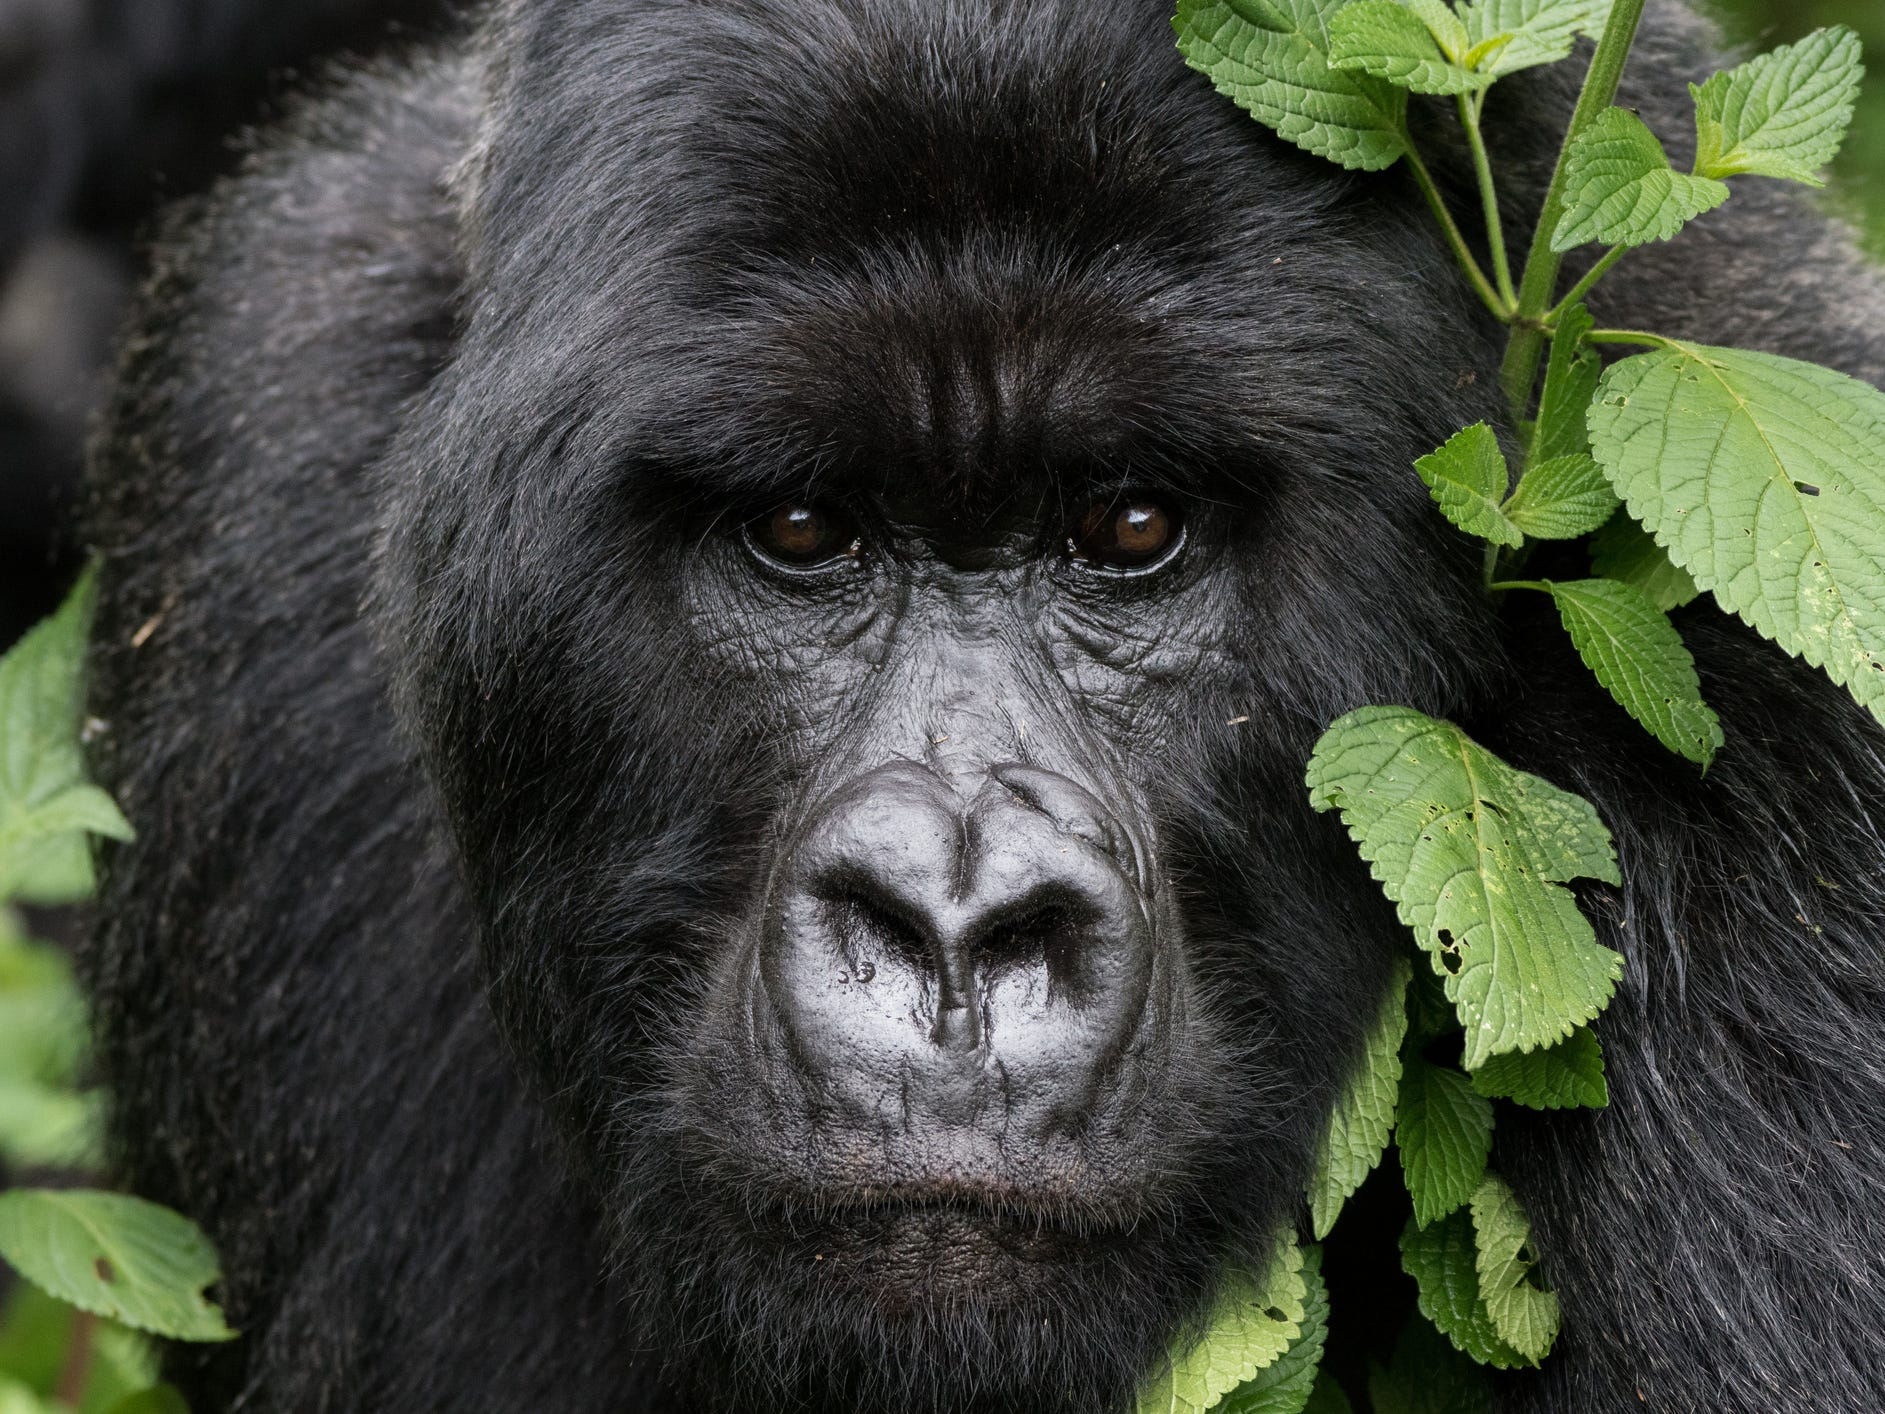 Rwanda and Uganda: Imagine crouching in a dense green forest just a few yards away from a mother gorilla cradling her baby, or a 400-pound silverback foraging for food. There are only about 880 mountain gorillas left on the planet, and Rwanda and Uganda are the best and safest places to view them. Uganda is a better option for travelers on a budget, as permits and accommodations tend to be cheaper; it's also easy to add other adventures onto your wildlife trip such as spotting lions and elephants in Queen Elizabeth National Park. Meanwhile, Rwanda has better infrastructure, shorter driving distances, and the chance to see playful golden monkeys.